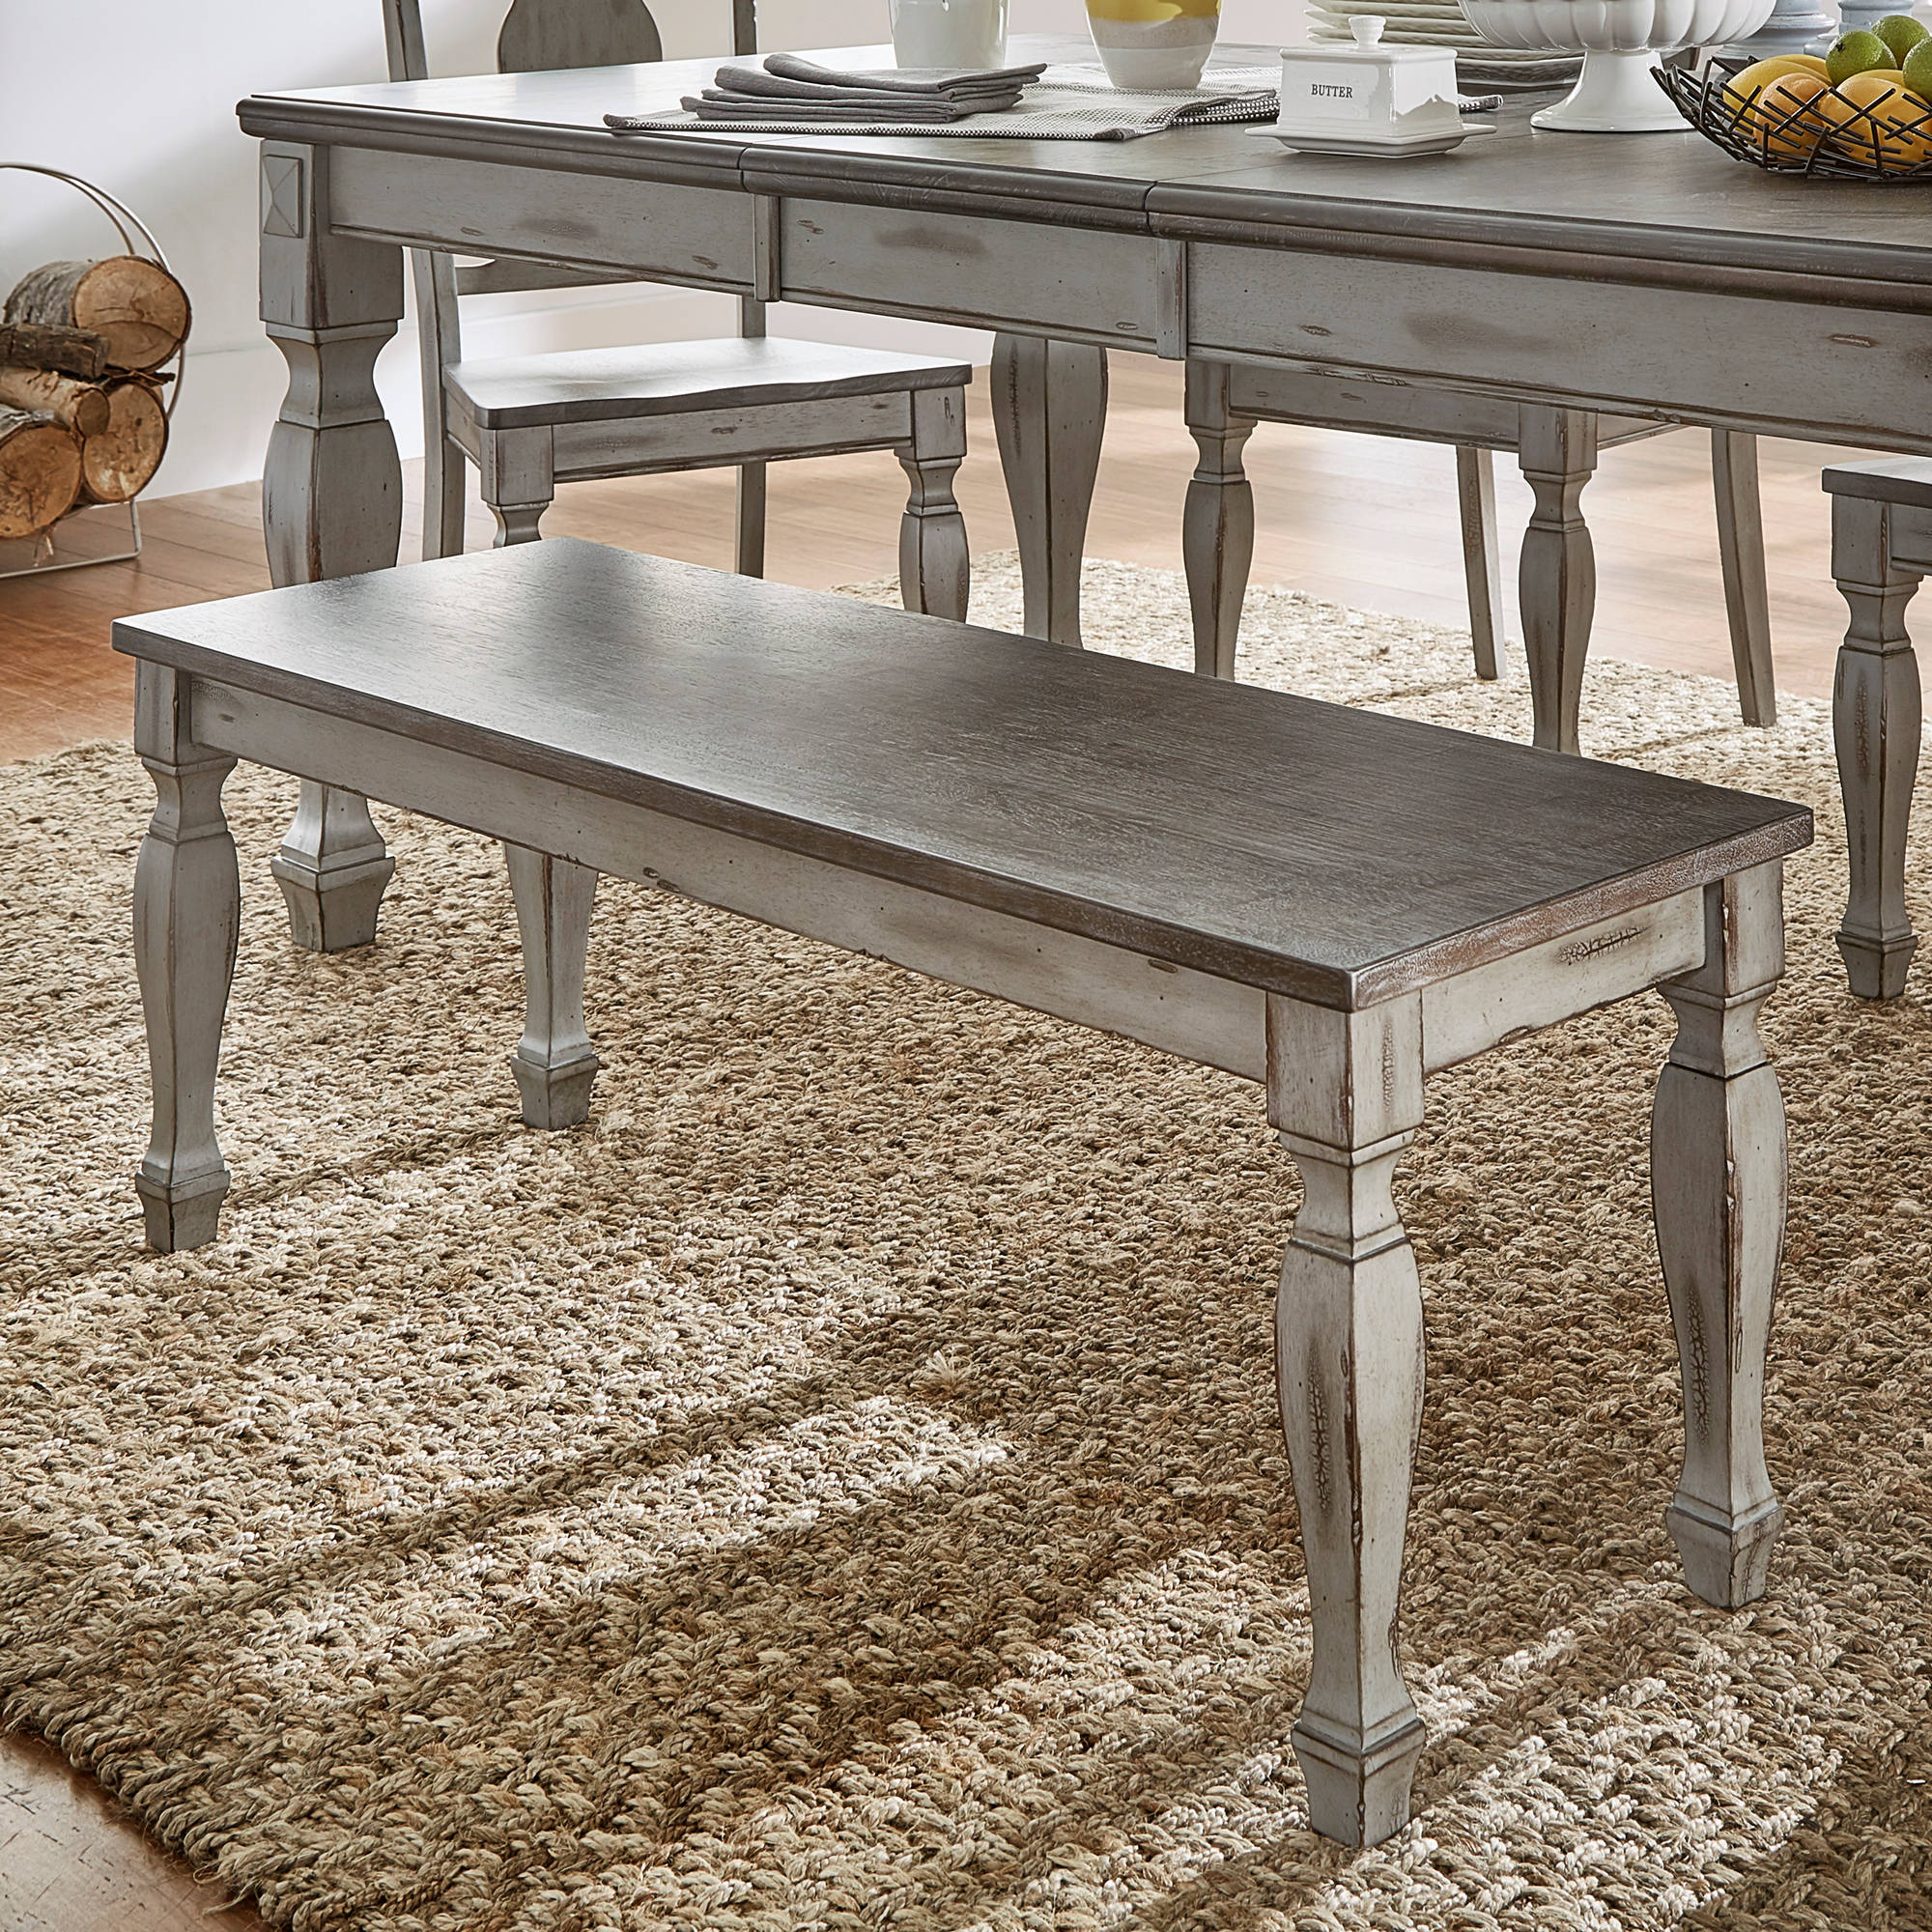 Fine Weston Home Two Tone Dining Bench Coffee And Antique Grey Bench Walmart Com Customarchery Wood Chair Design Ideas Customarcherynet